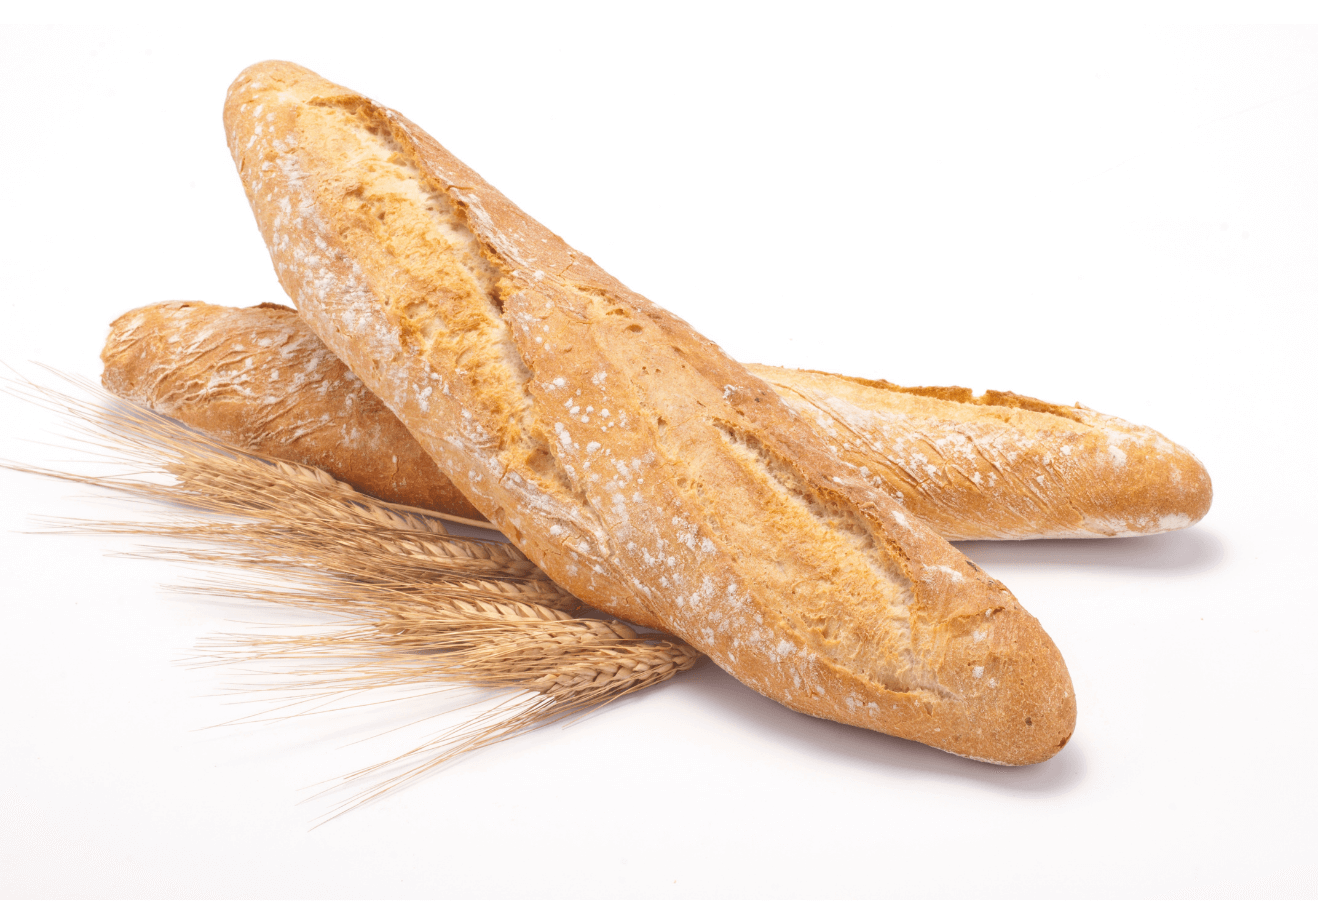 Baguette from France